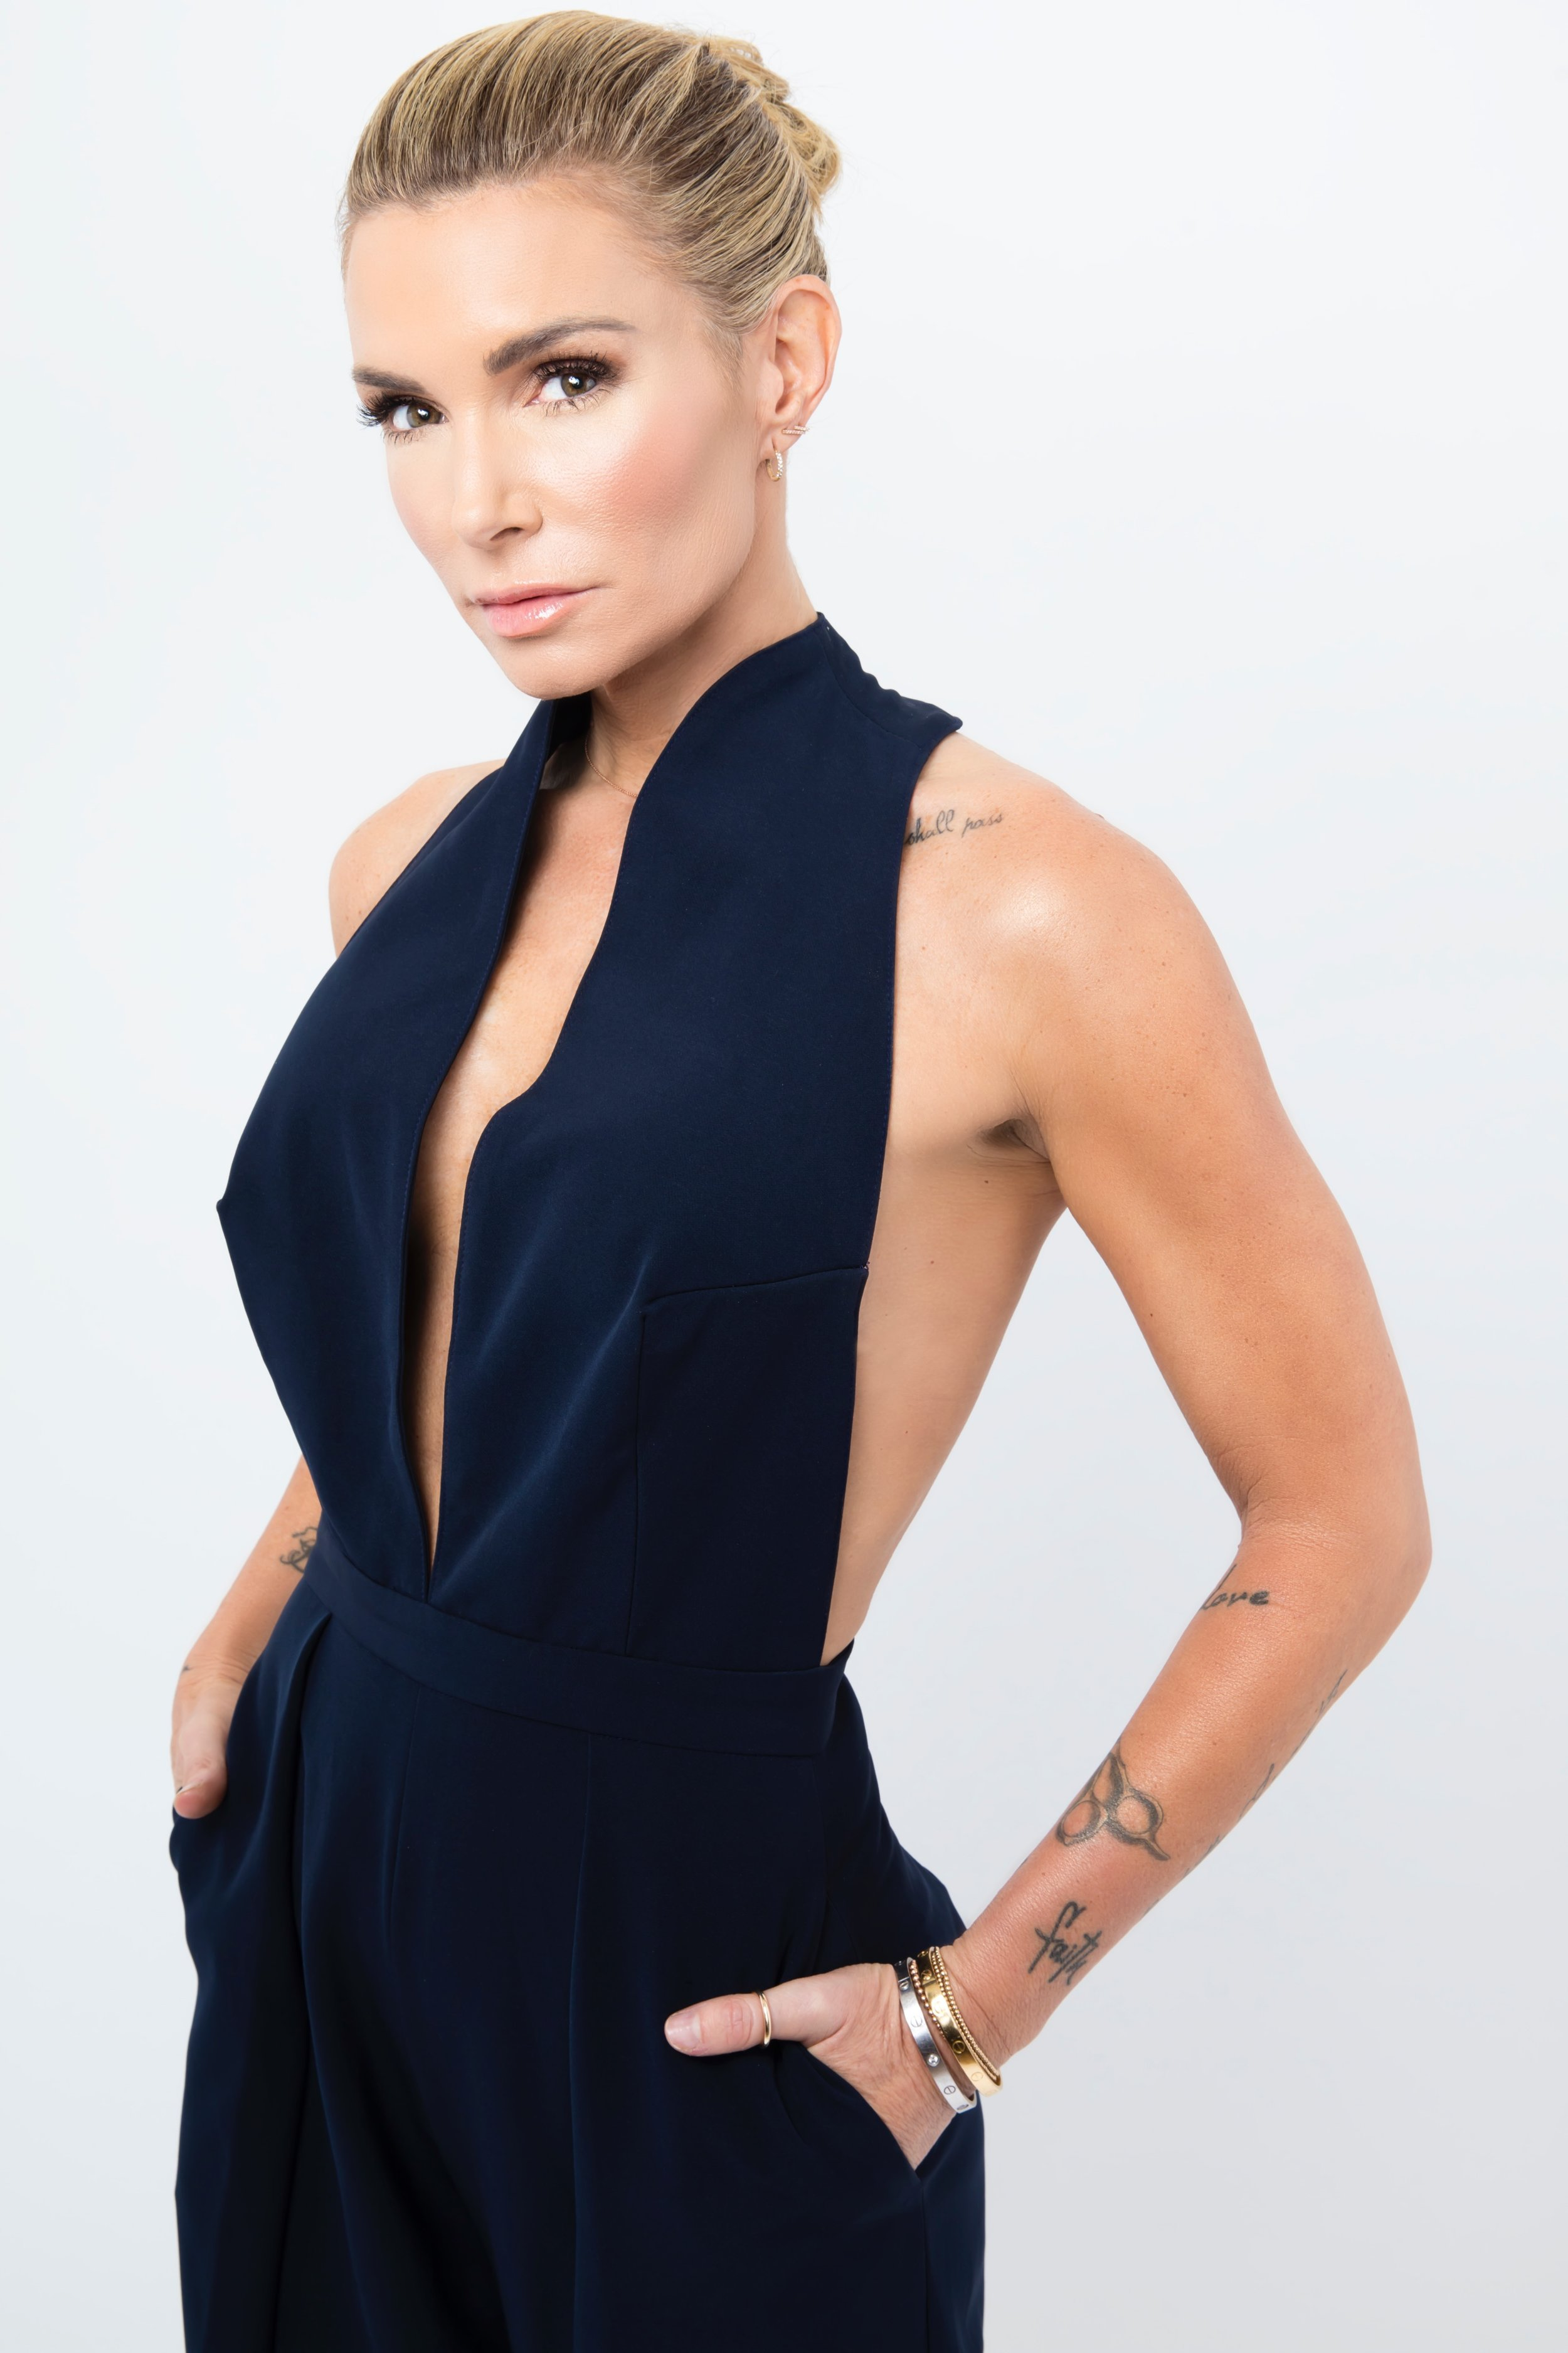 """Eden Sassoon - Founder of Beauty Gives Back, Owner of Eden Salon, and Owner of Eden Pilates""""Michelle is incredibly powerful in the most divine way. Simple and Perfect."""